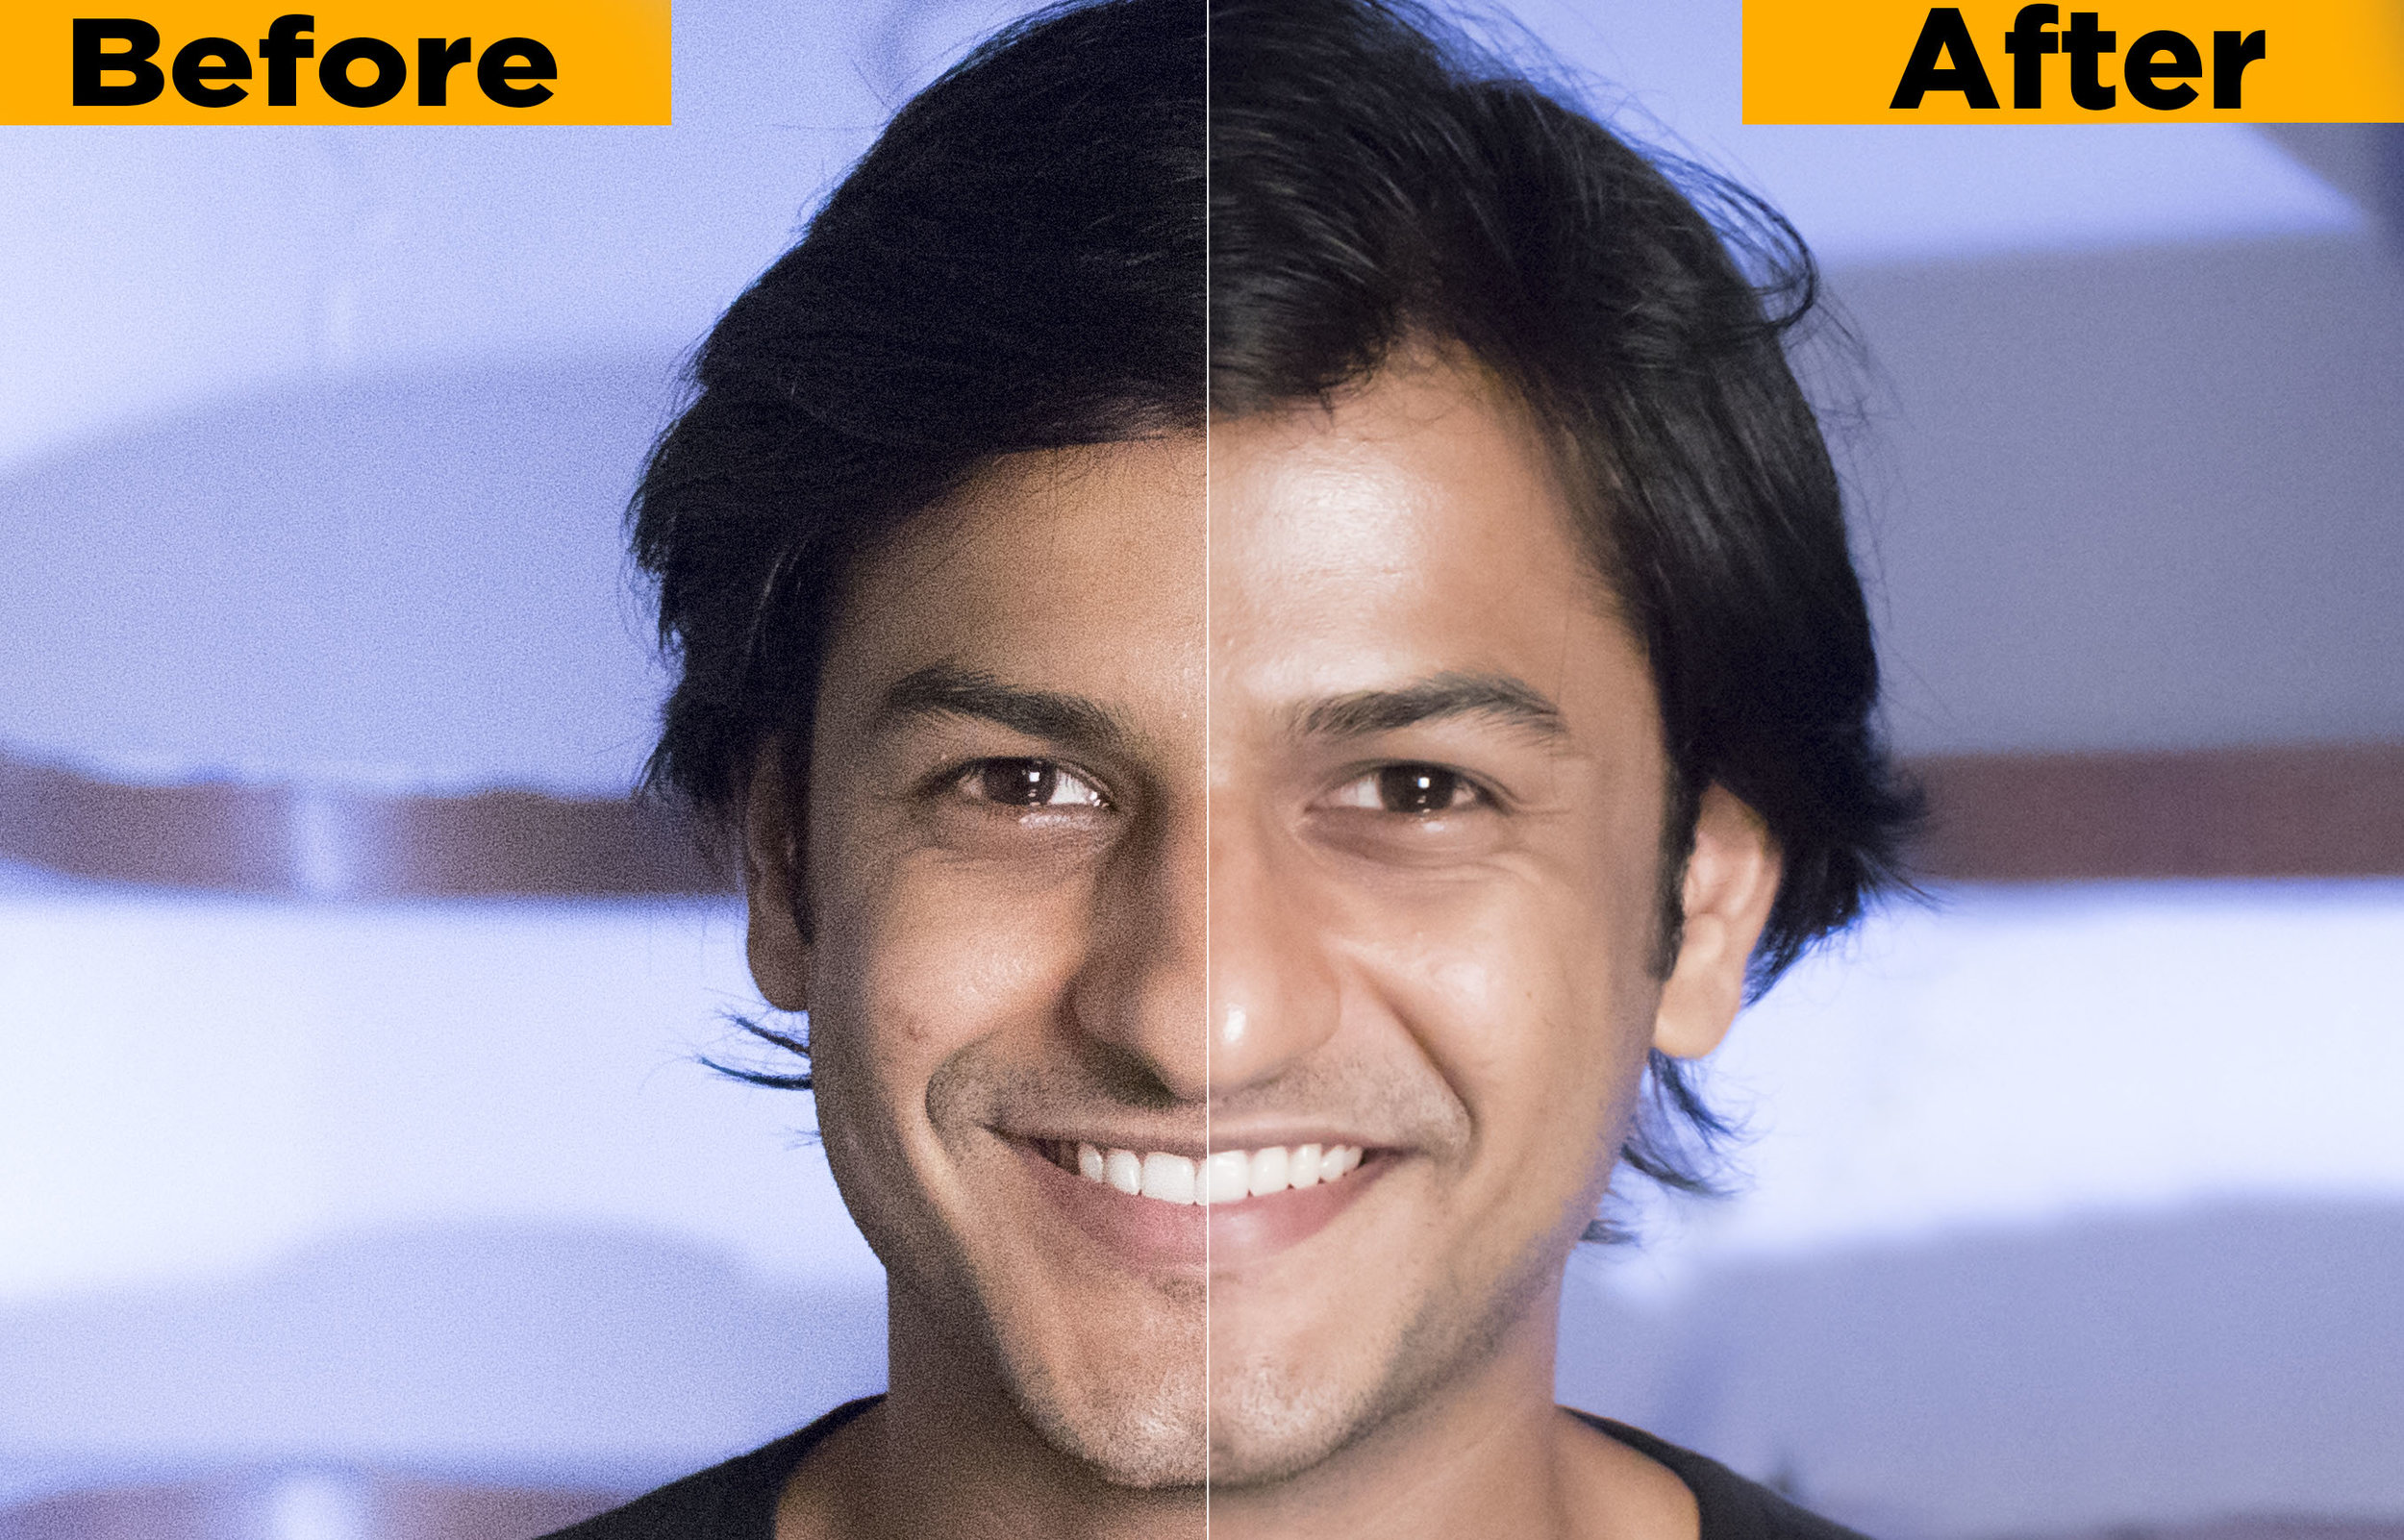 A before and after comparison of noise-reduction in Adobe Lightroom.